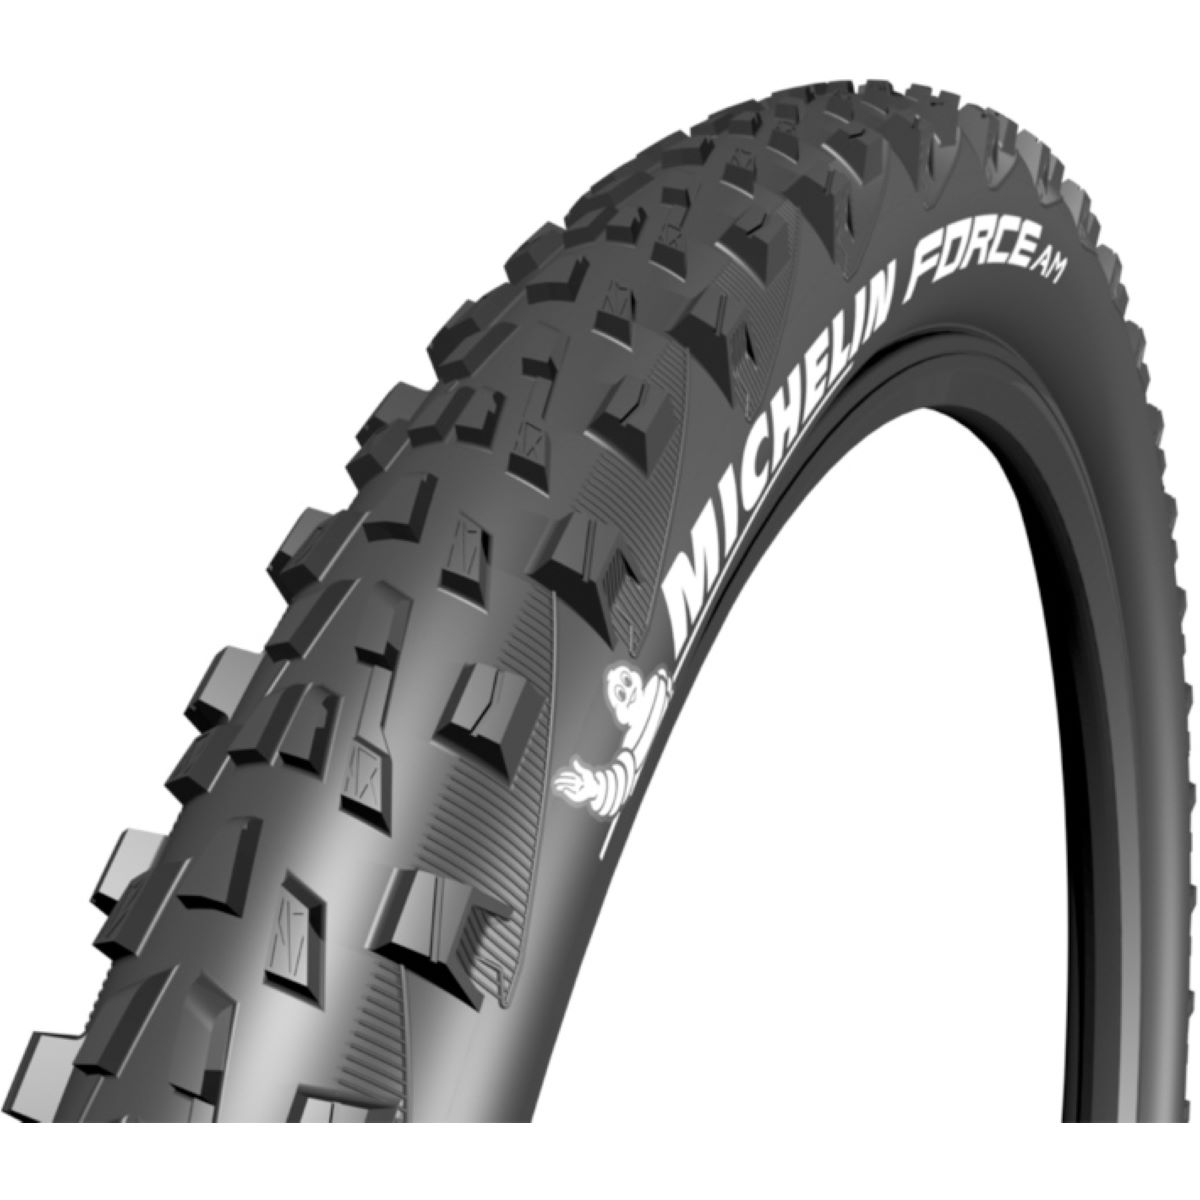 Pneu VTT Michelin Force AM Competition - 2.25' 27.5' Noir Pneus VTT